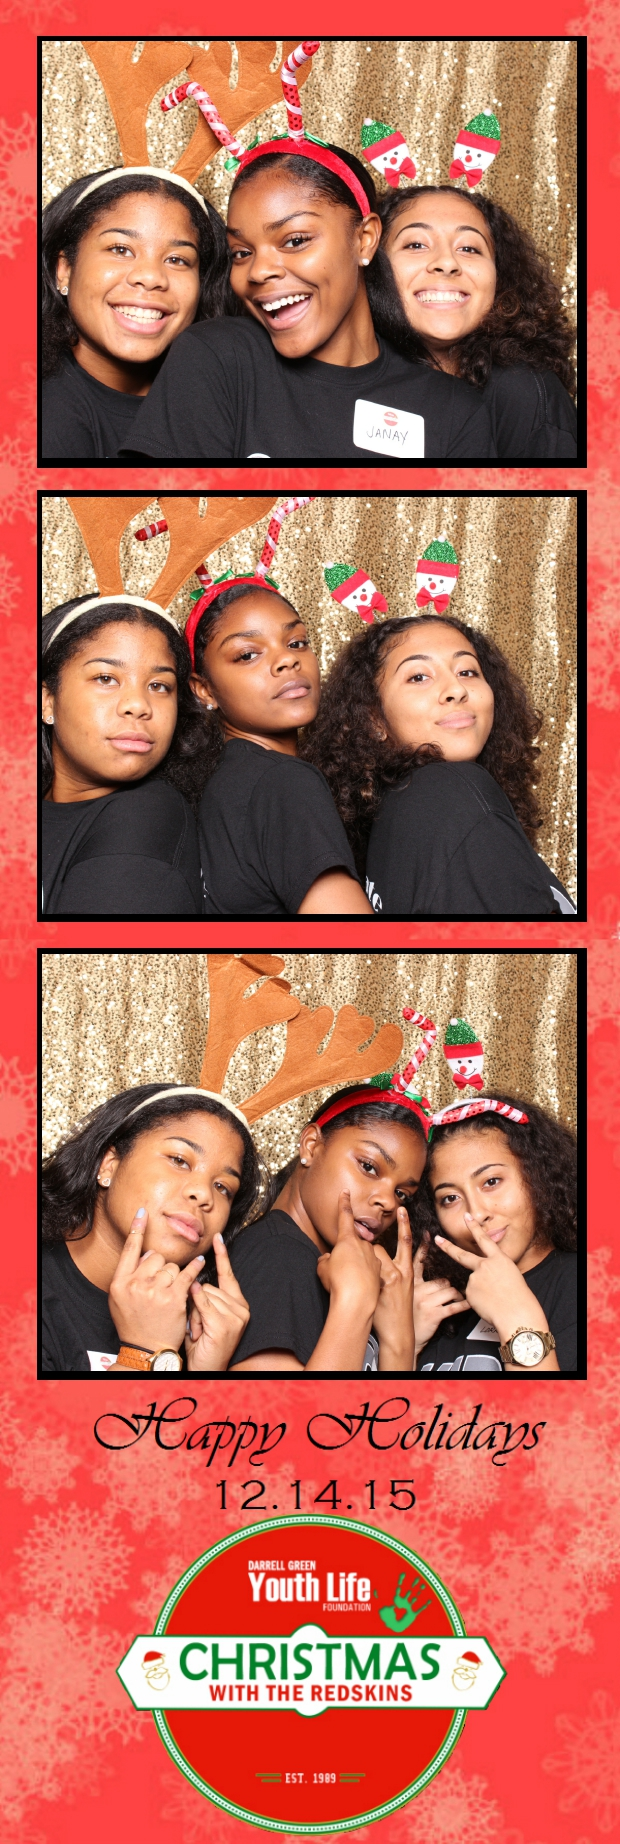 Guest House Events Photo Booth DGYLF Strips (69).jpg